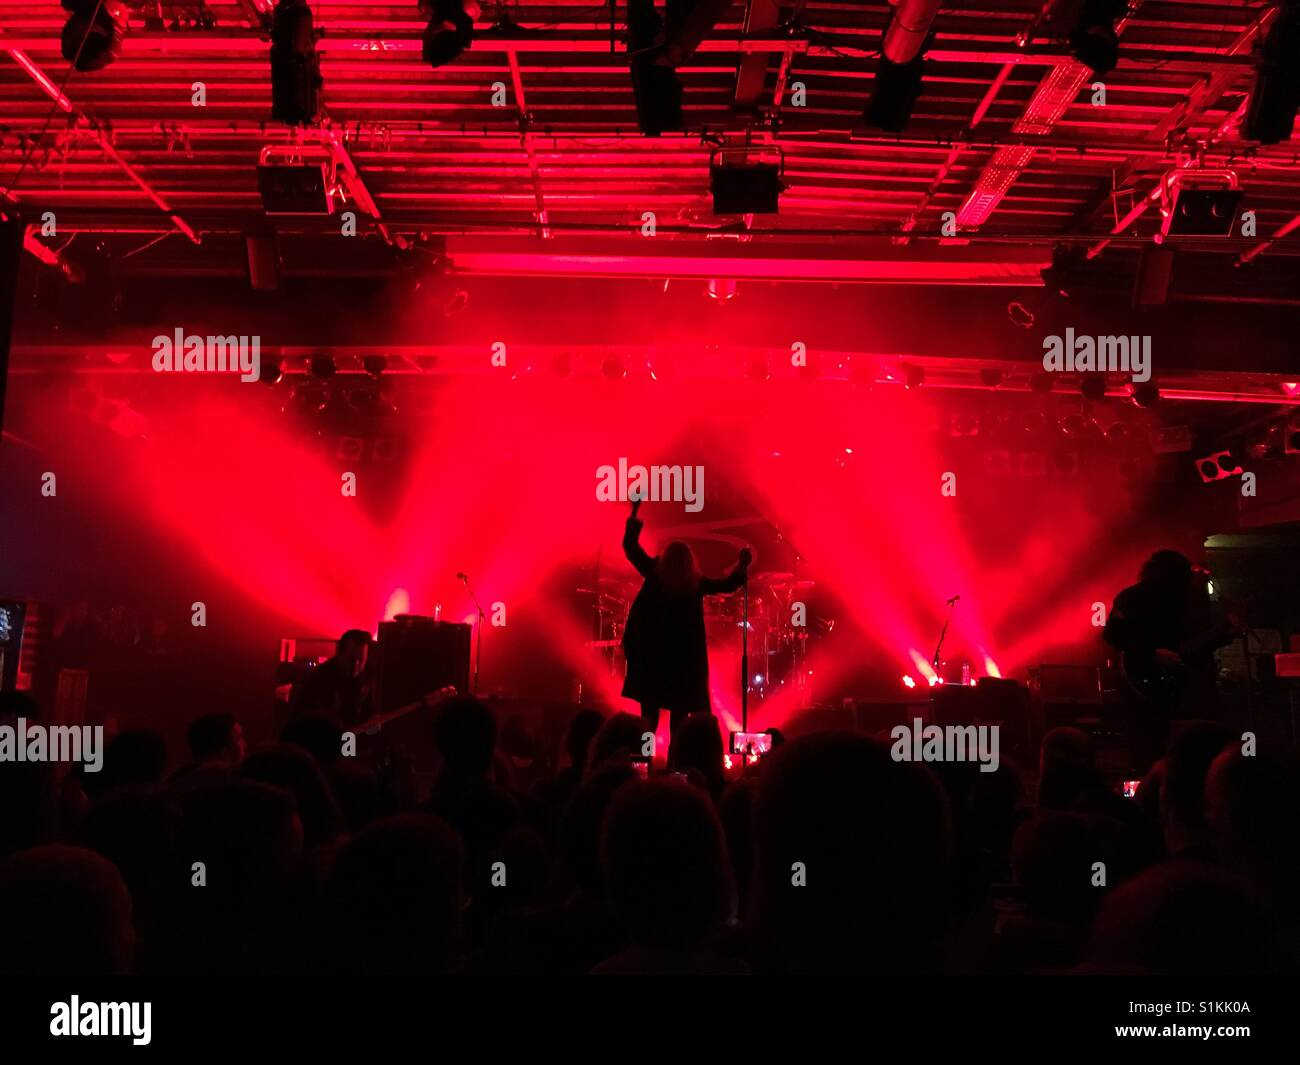 The pretty reckless concert stock photo 310833274 alamy the pretty reckless concert m4hsunfo